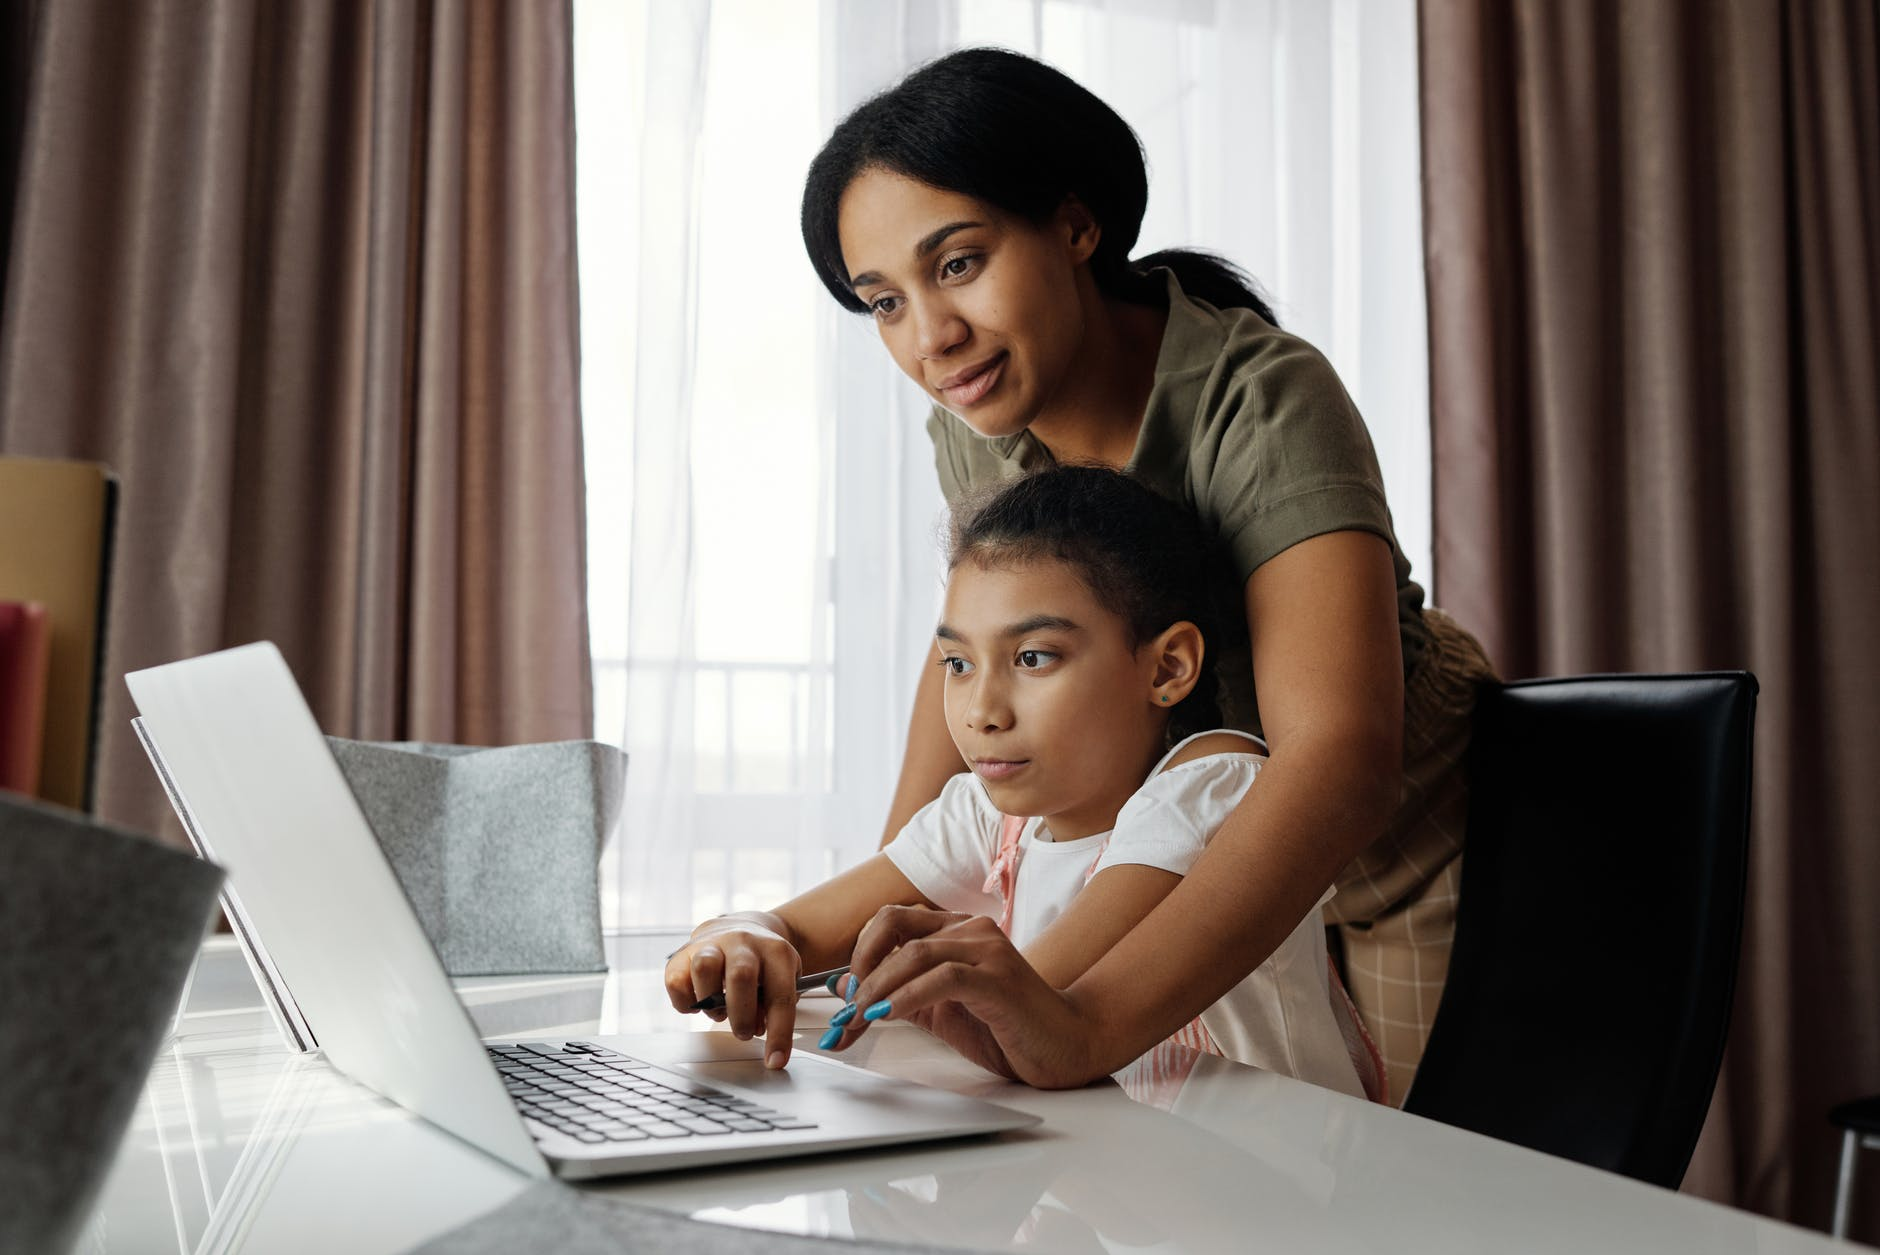 Mom assists daughter with work on laptop computer